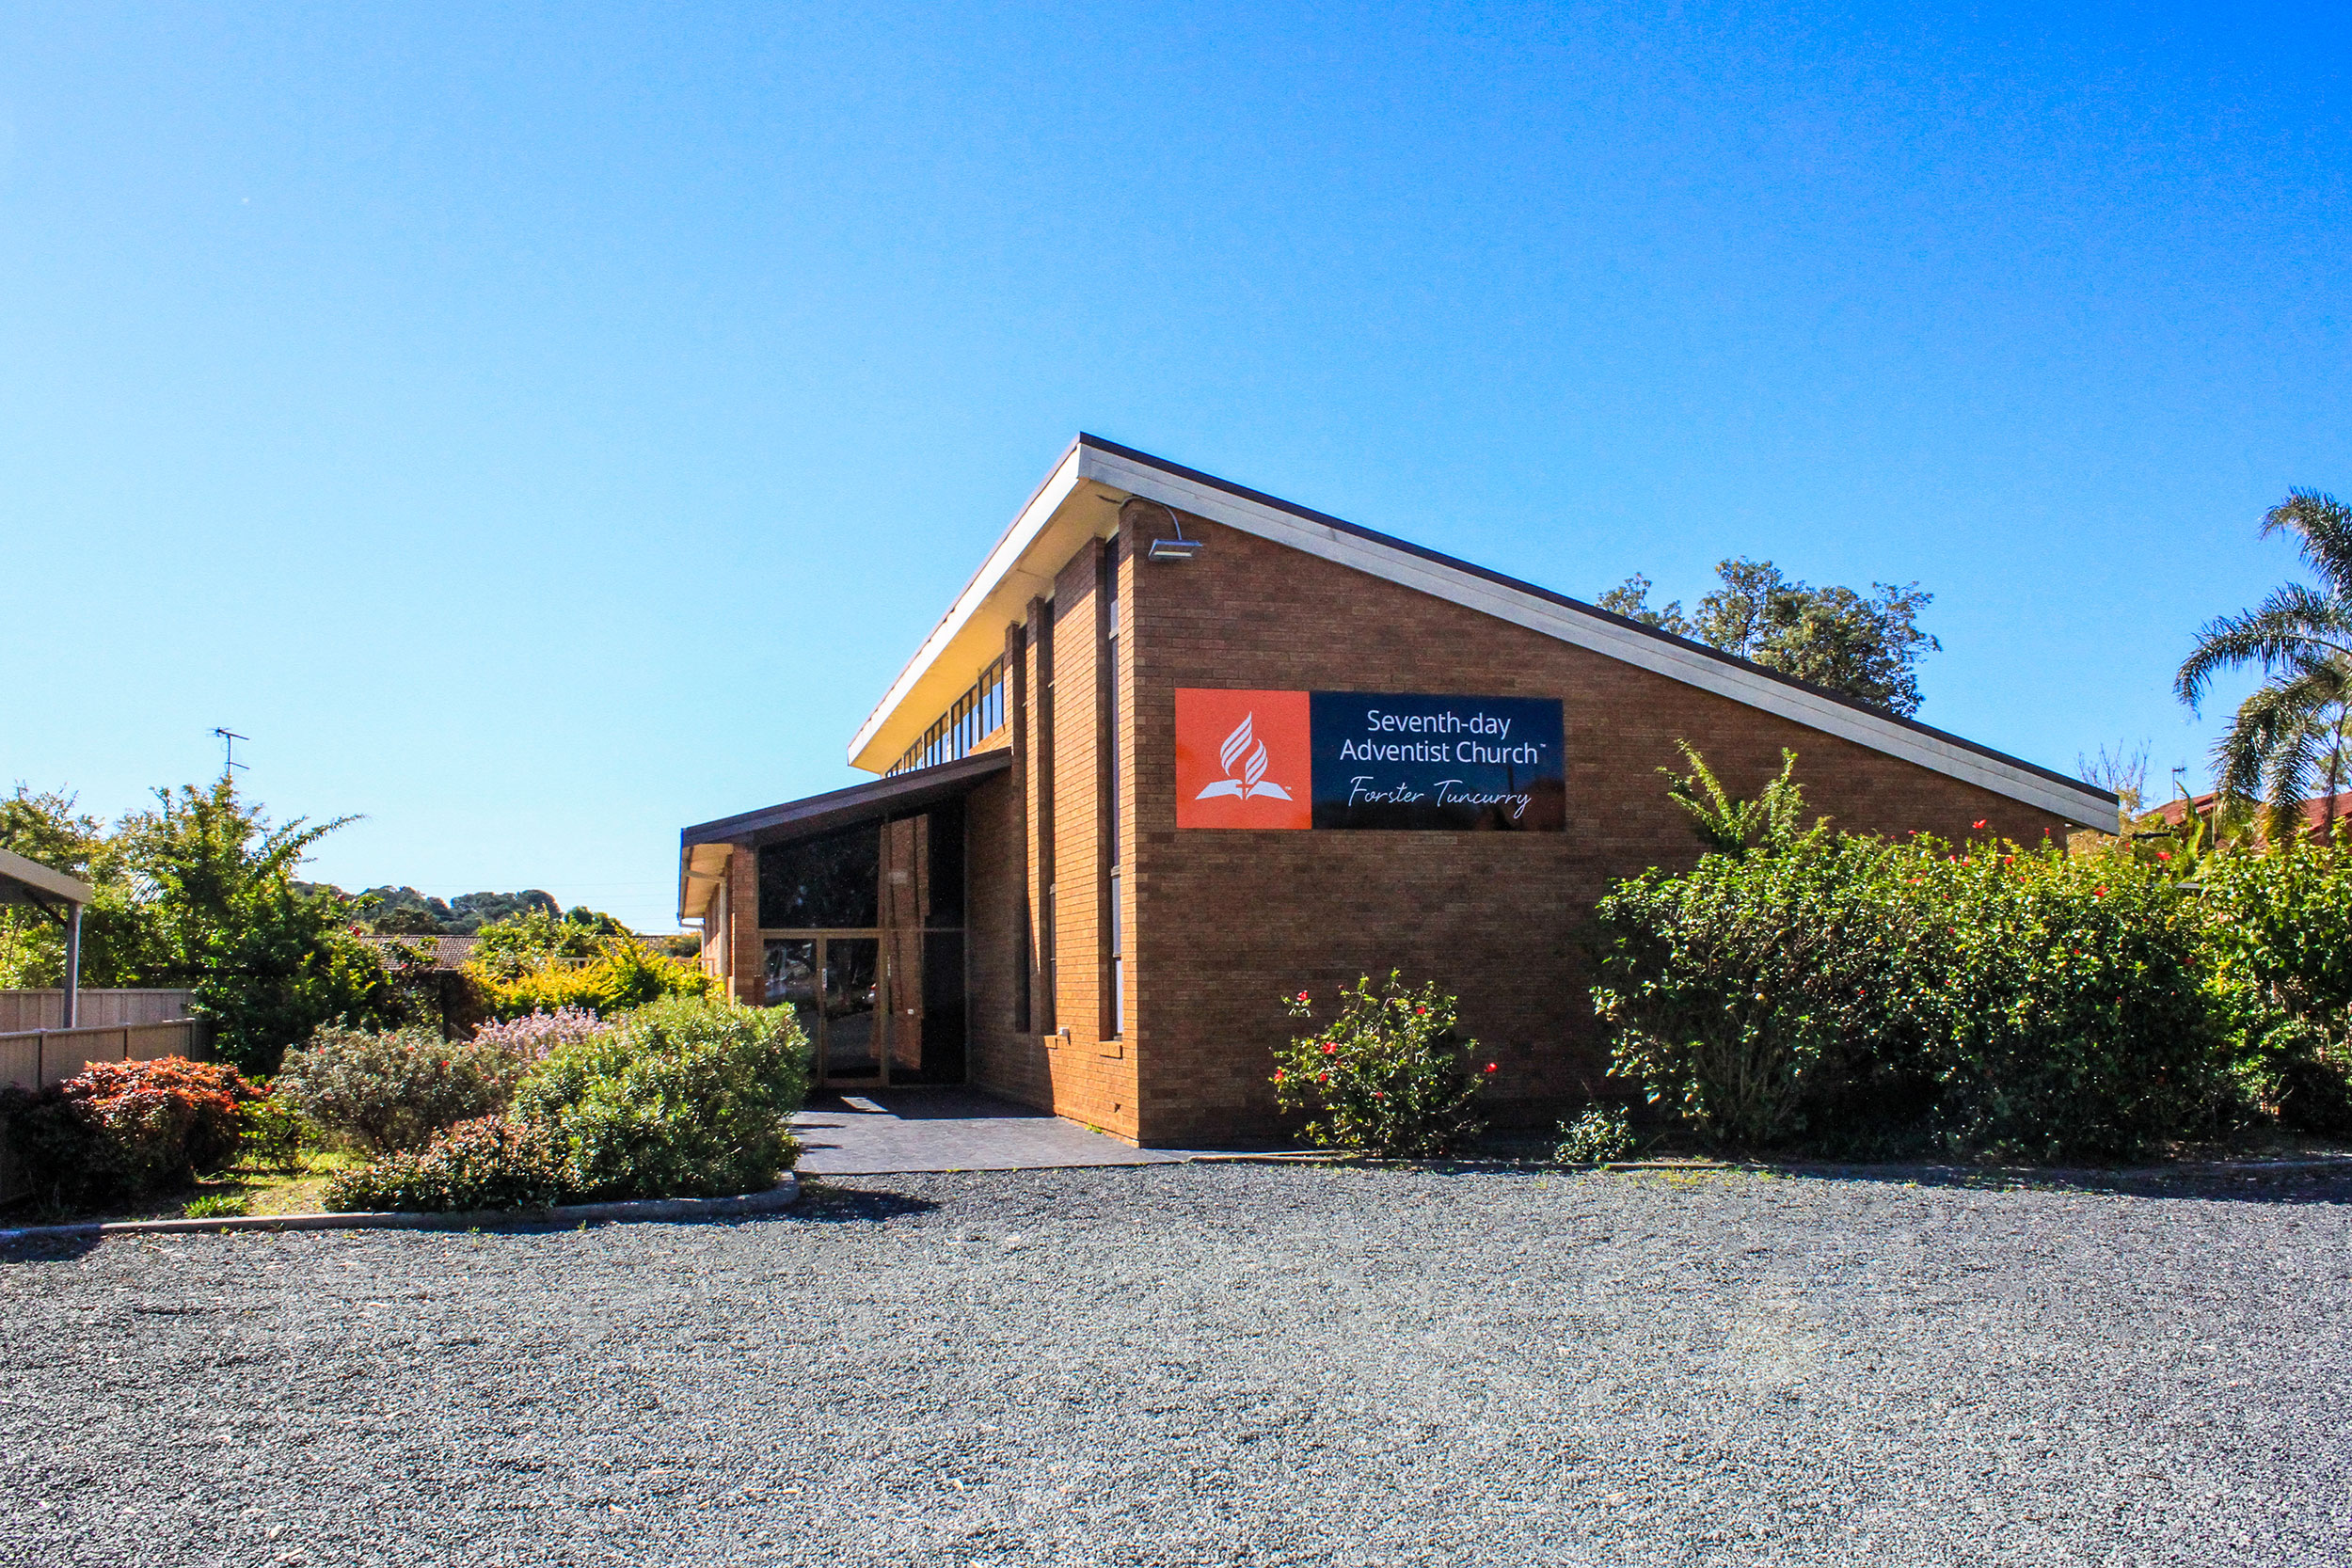 Name : Forster Tuncurry Adventist Church